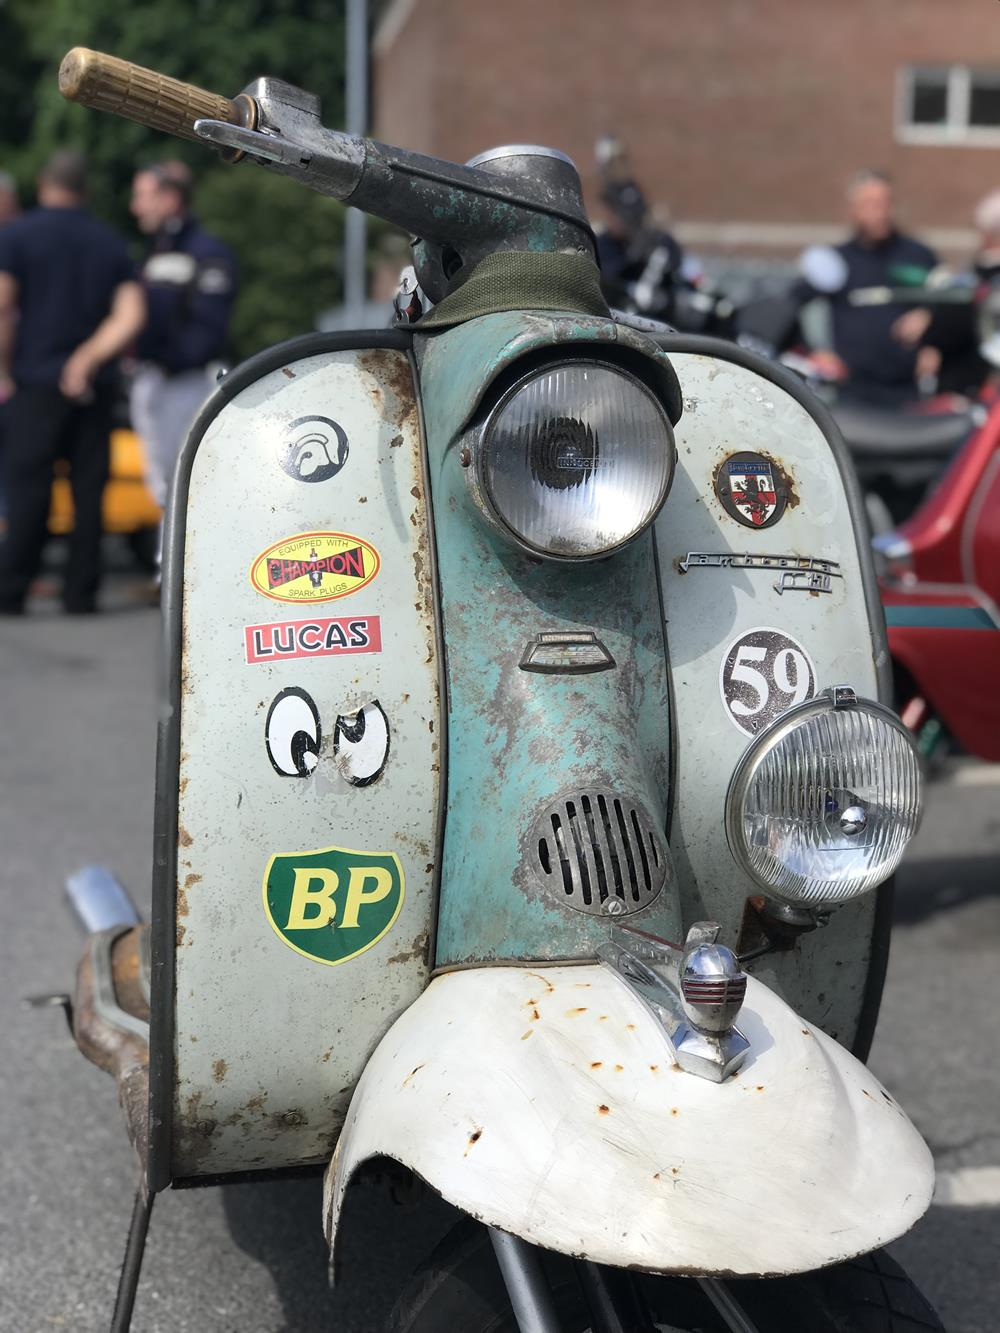 Rusty Series 1 Lambretta with stickers on the front